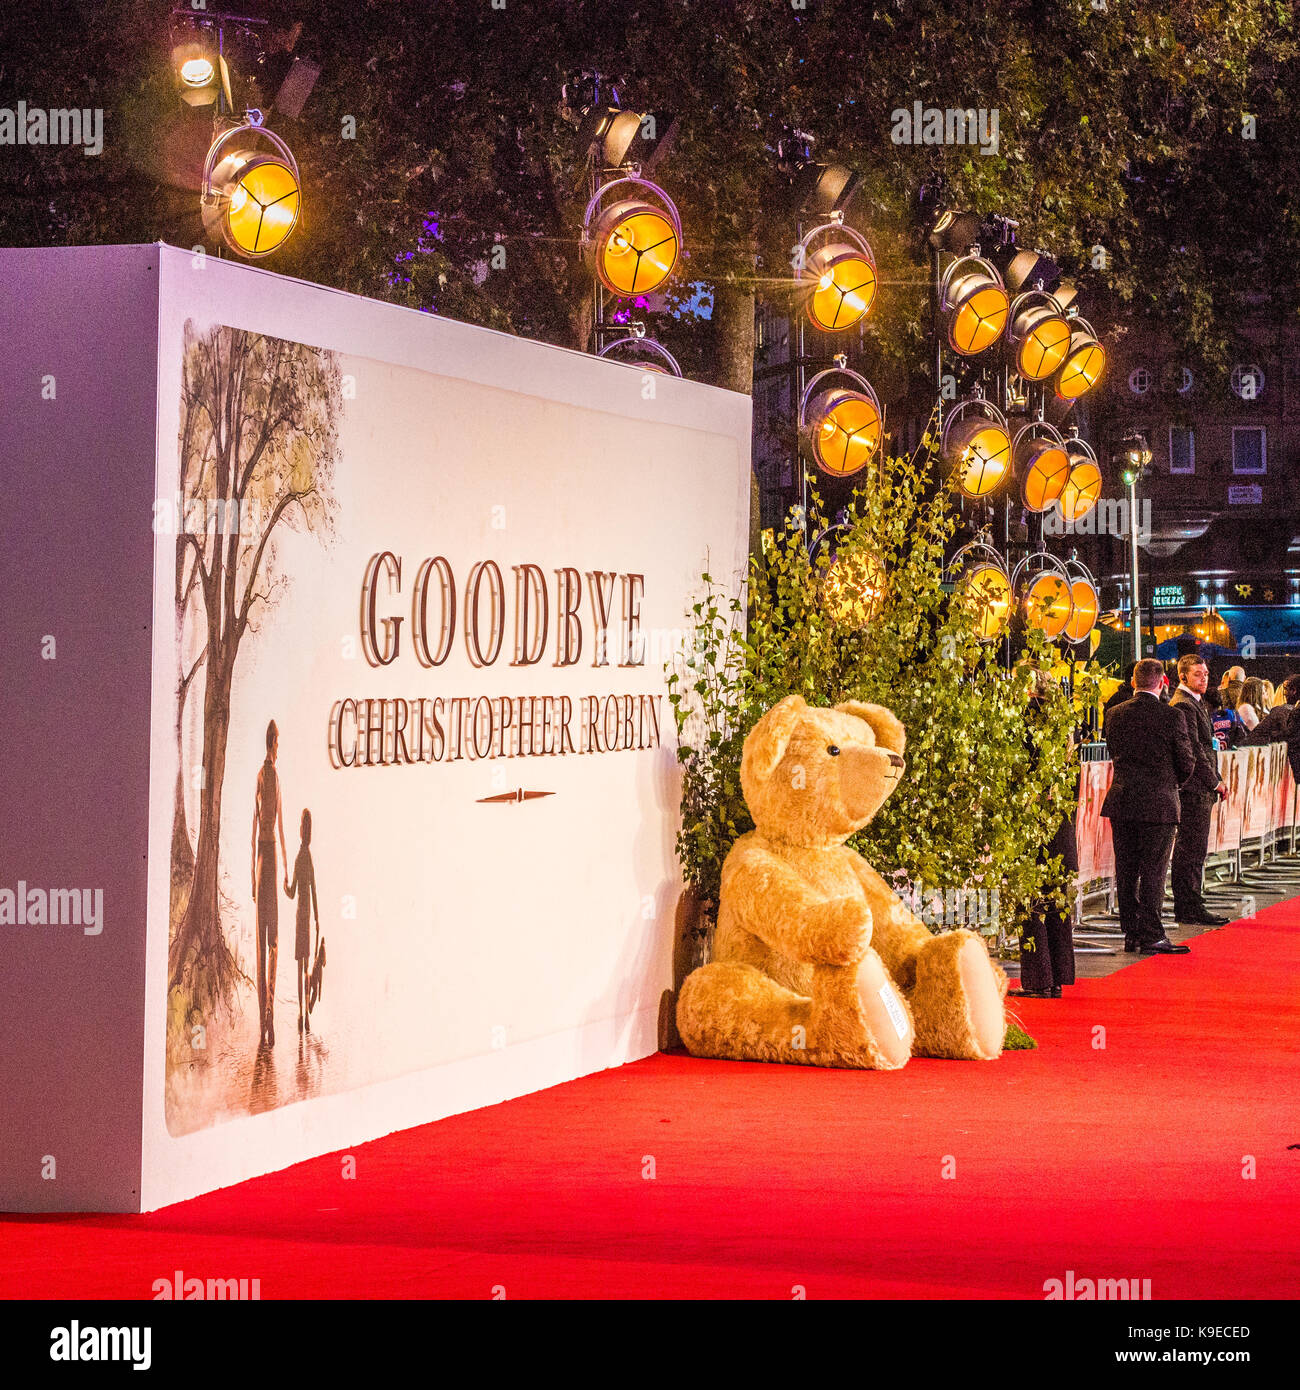 Display at Film premiere Leicester Square, 'Goodbye Christopher Robin'. - Stock Image